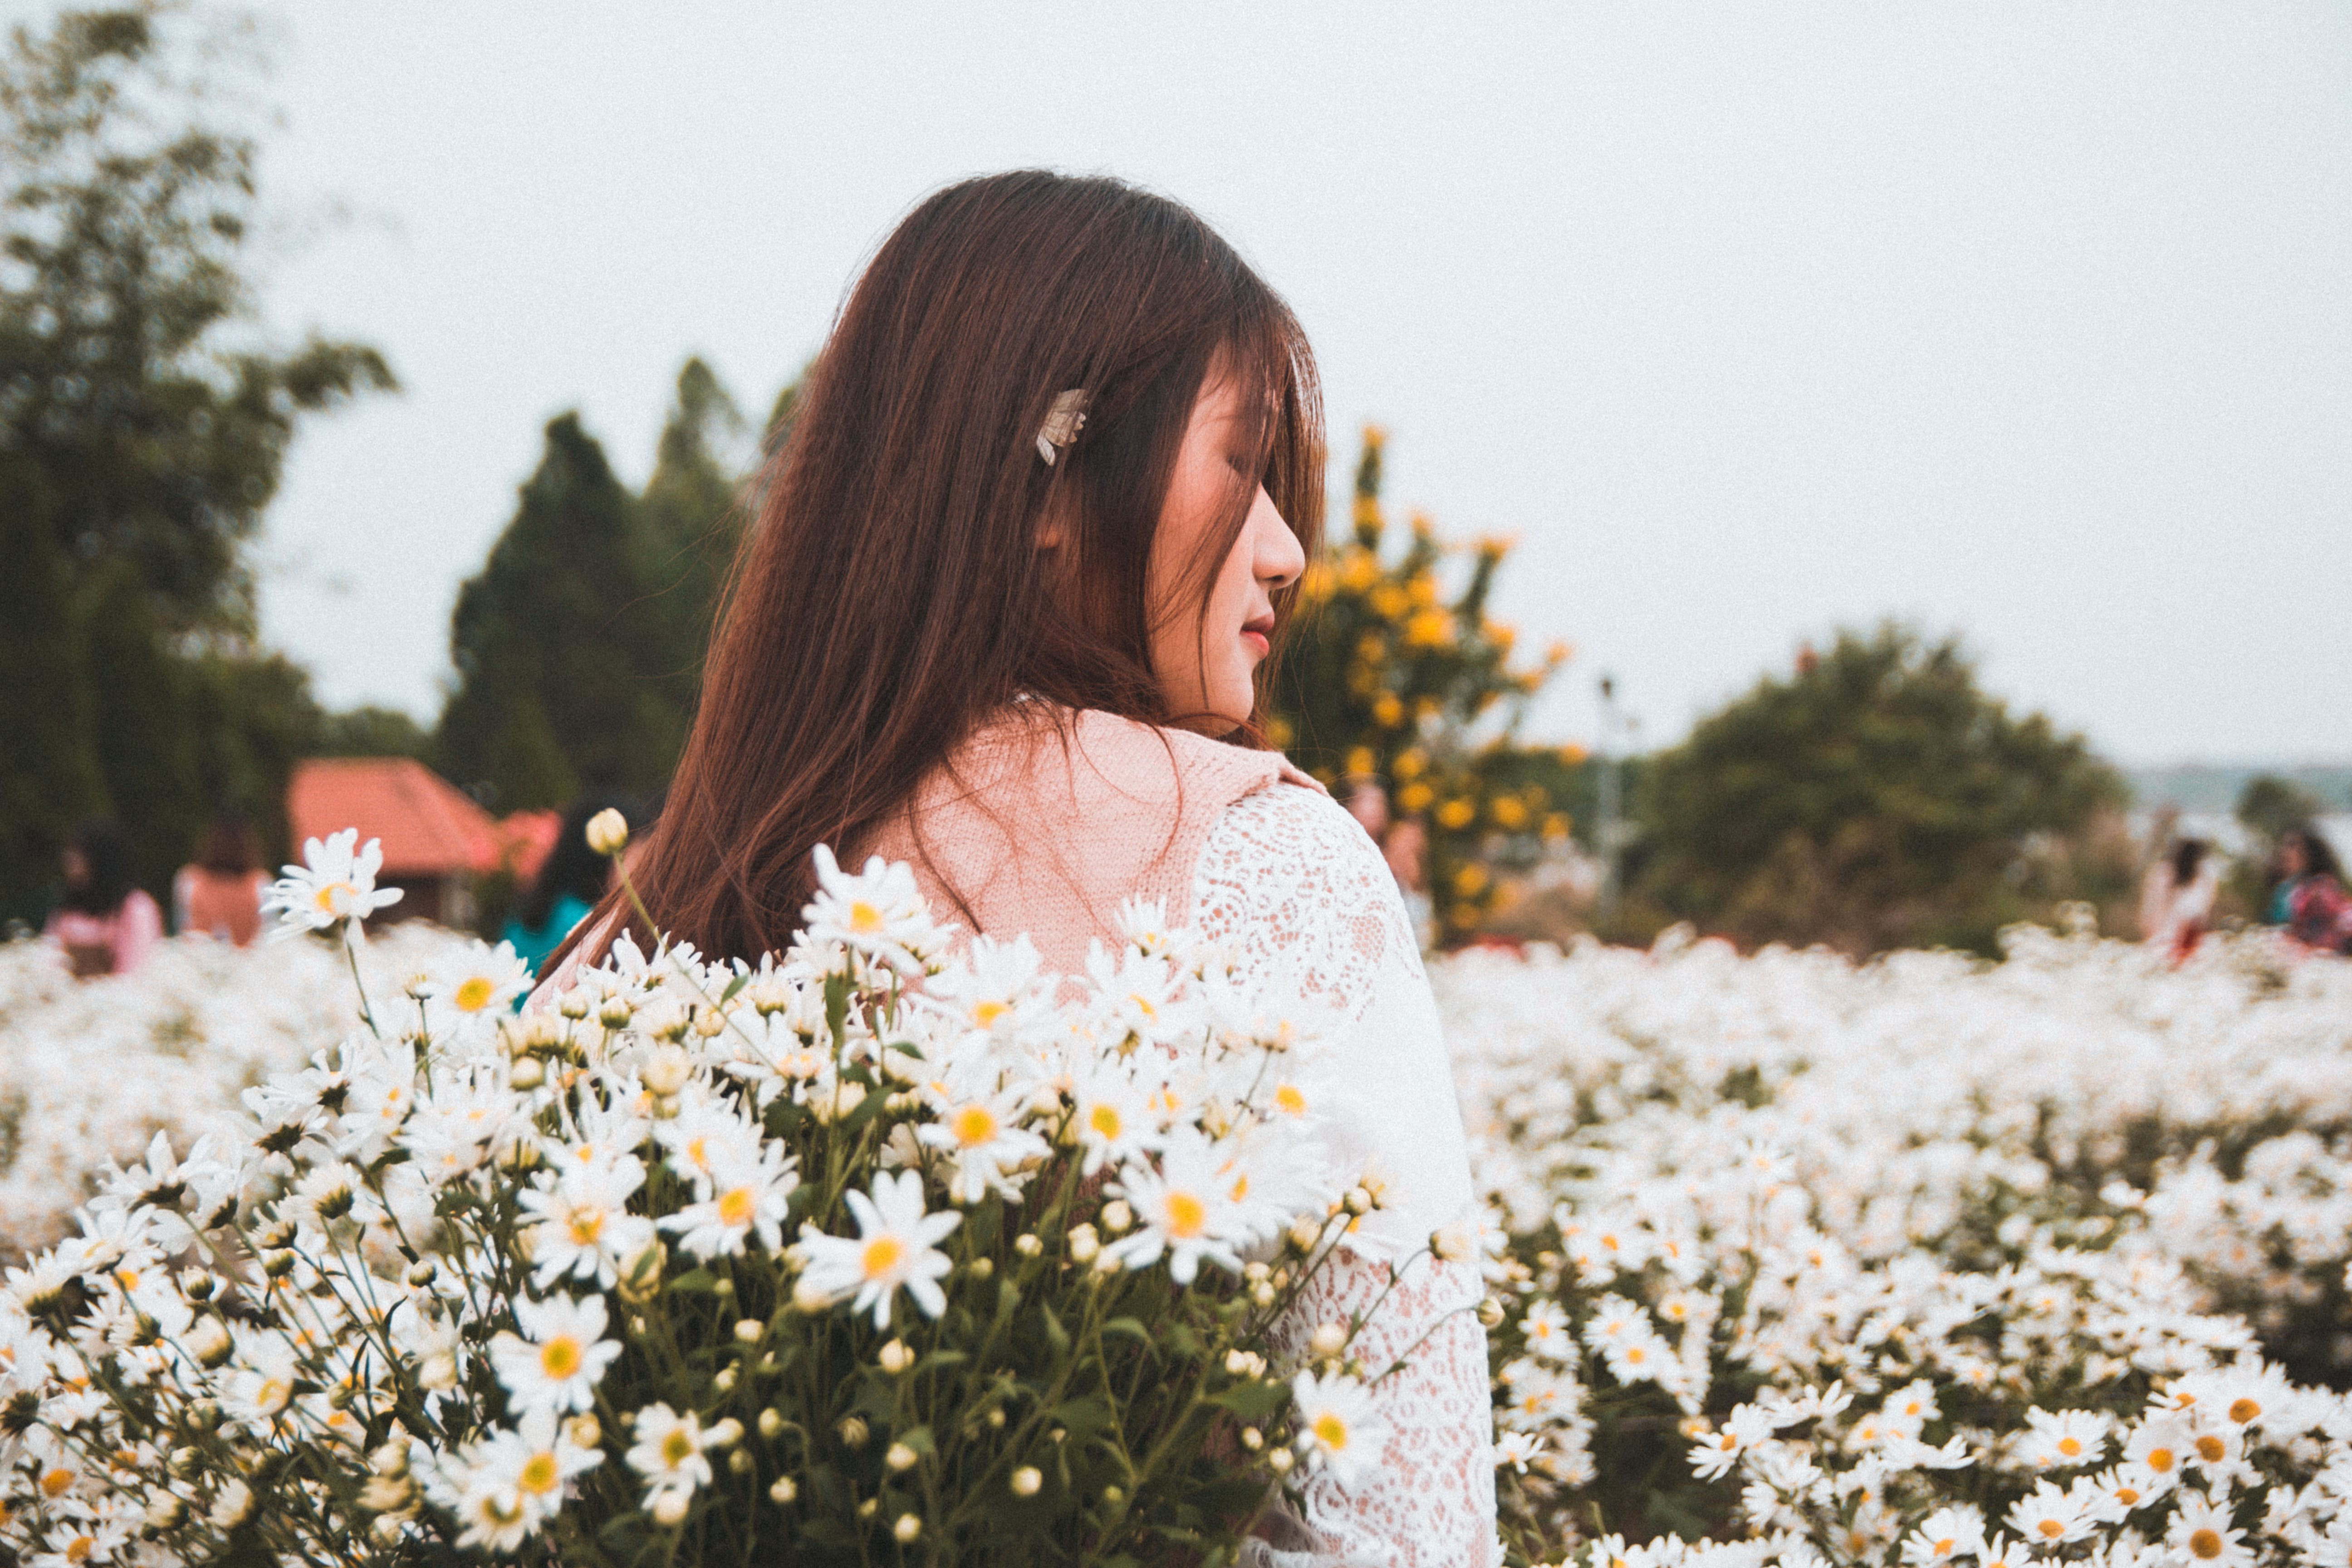 Woman Standing Near White Daisy Flowers